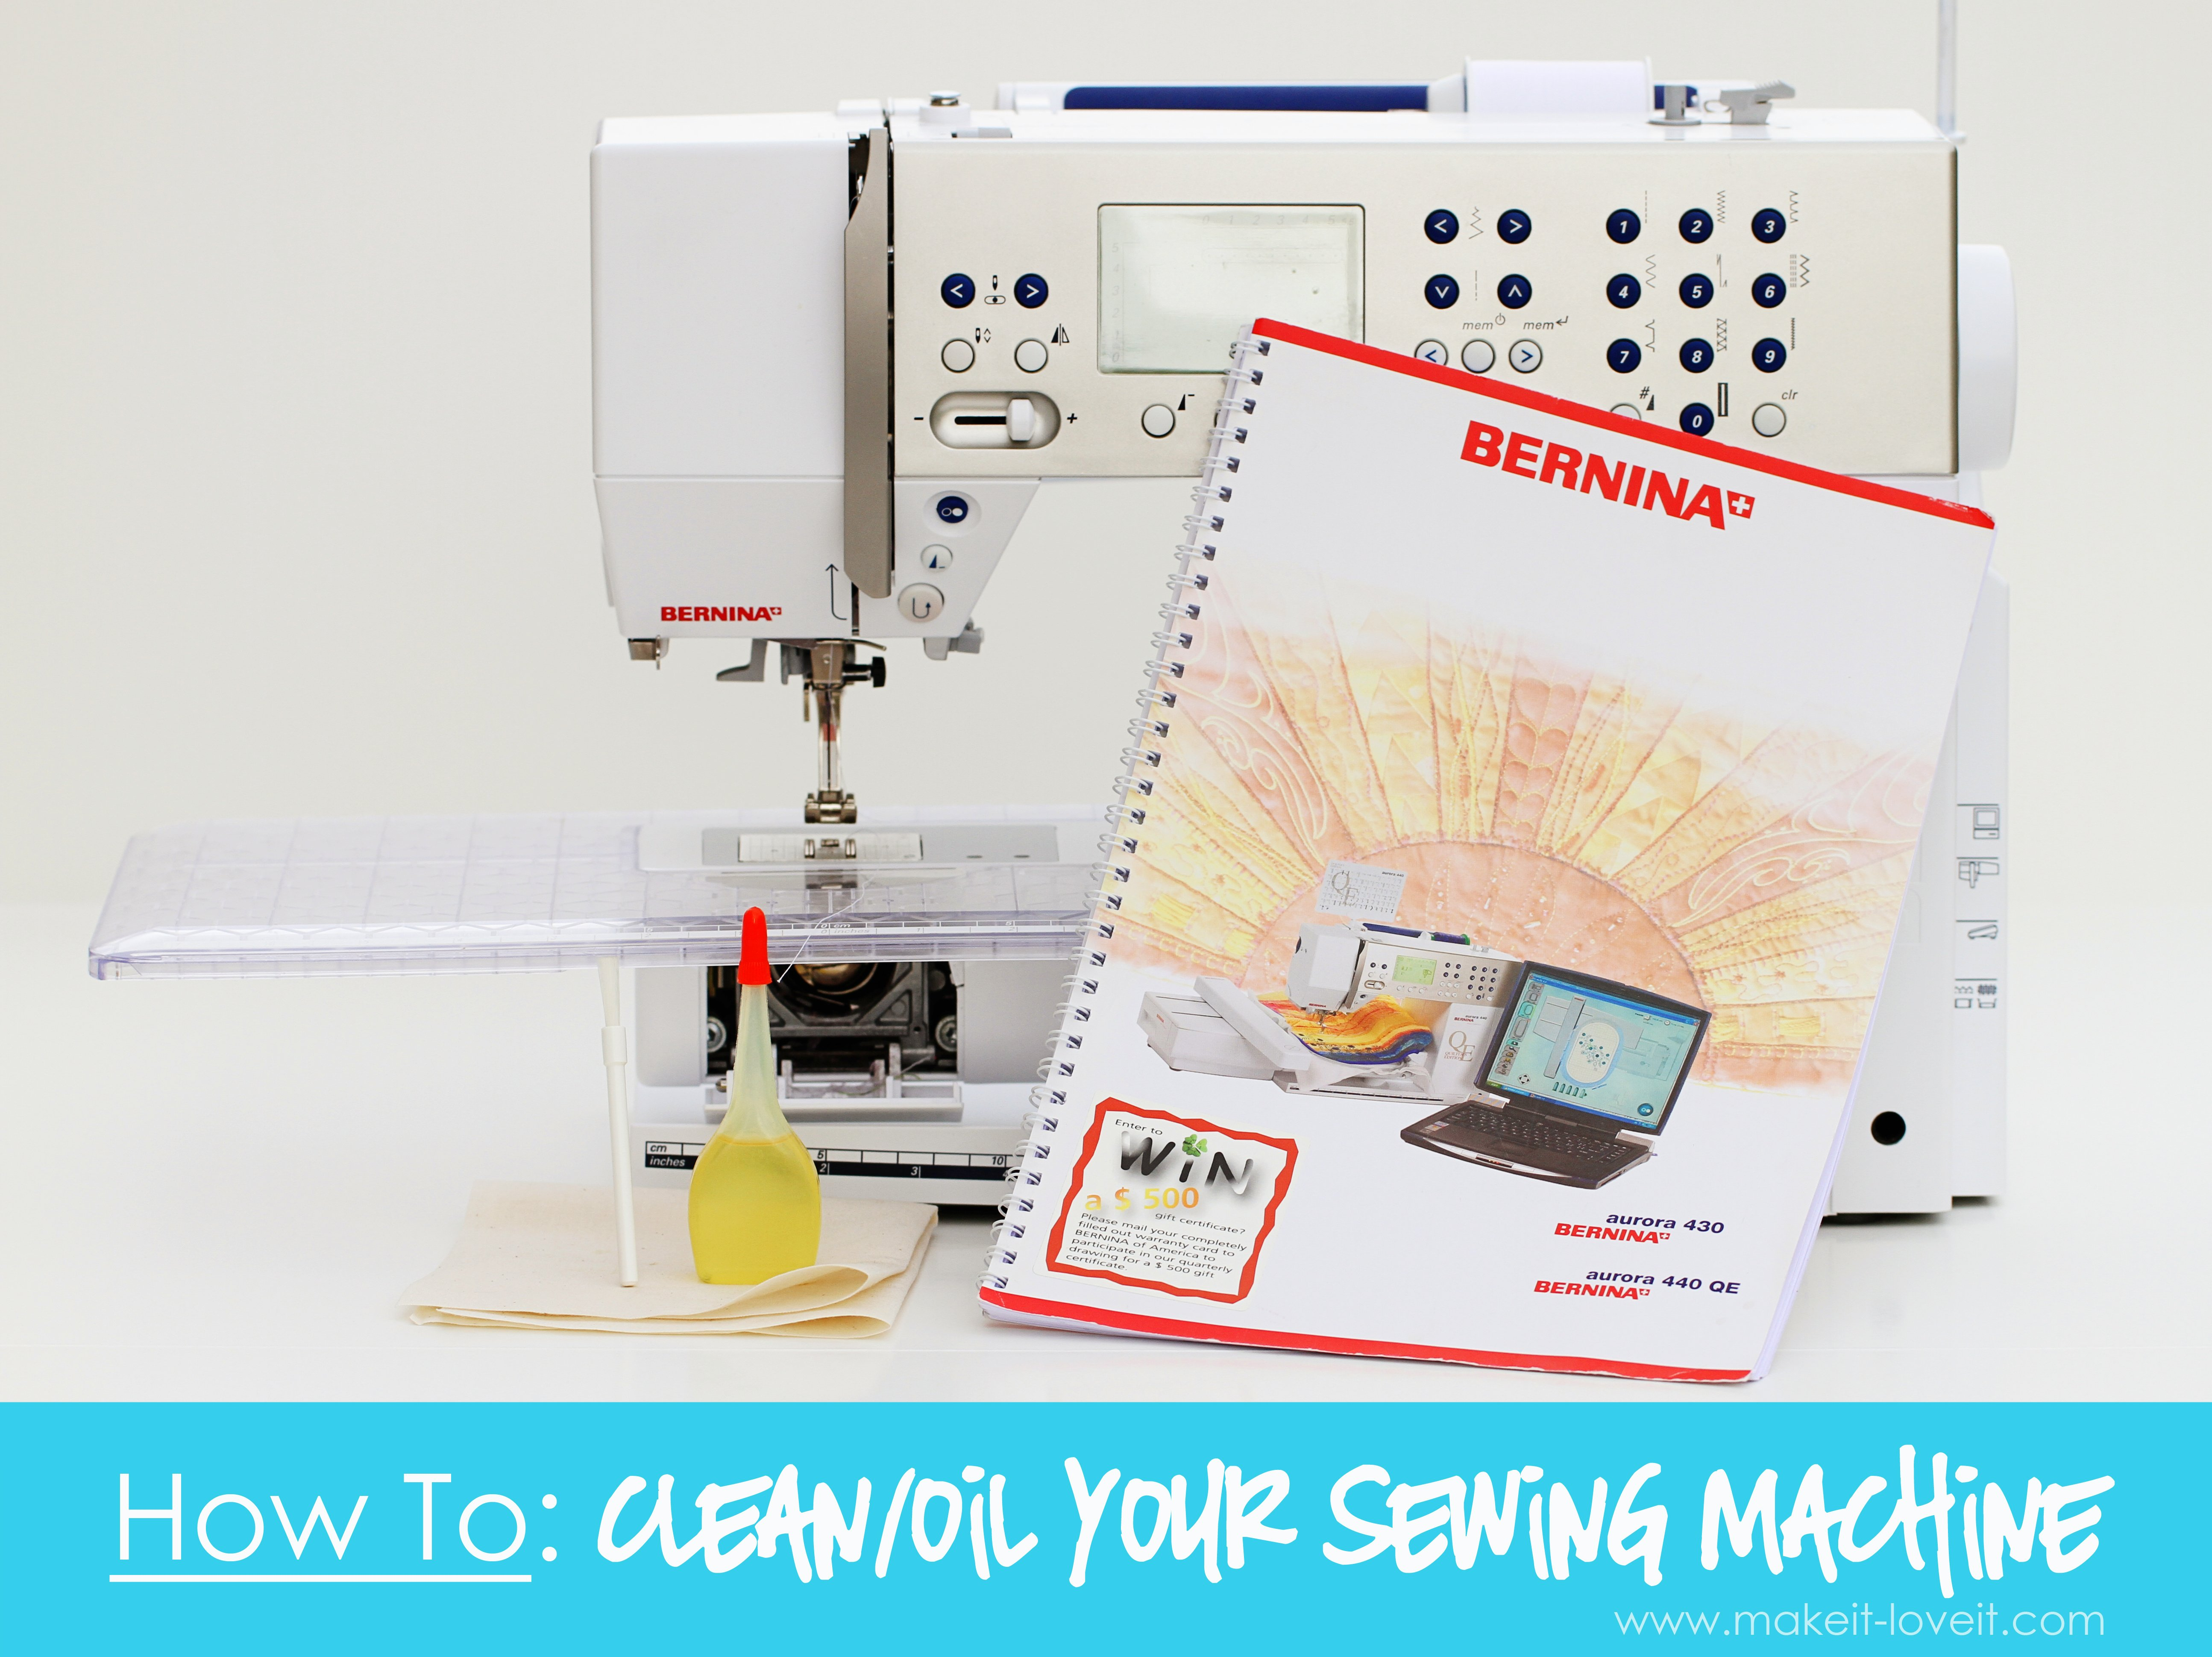 How to: clean/oil your sewing machine